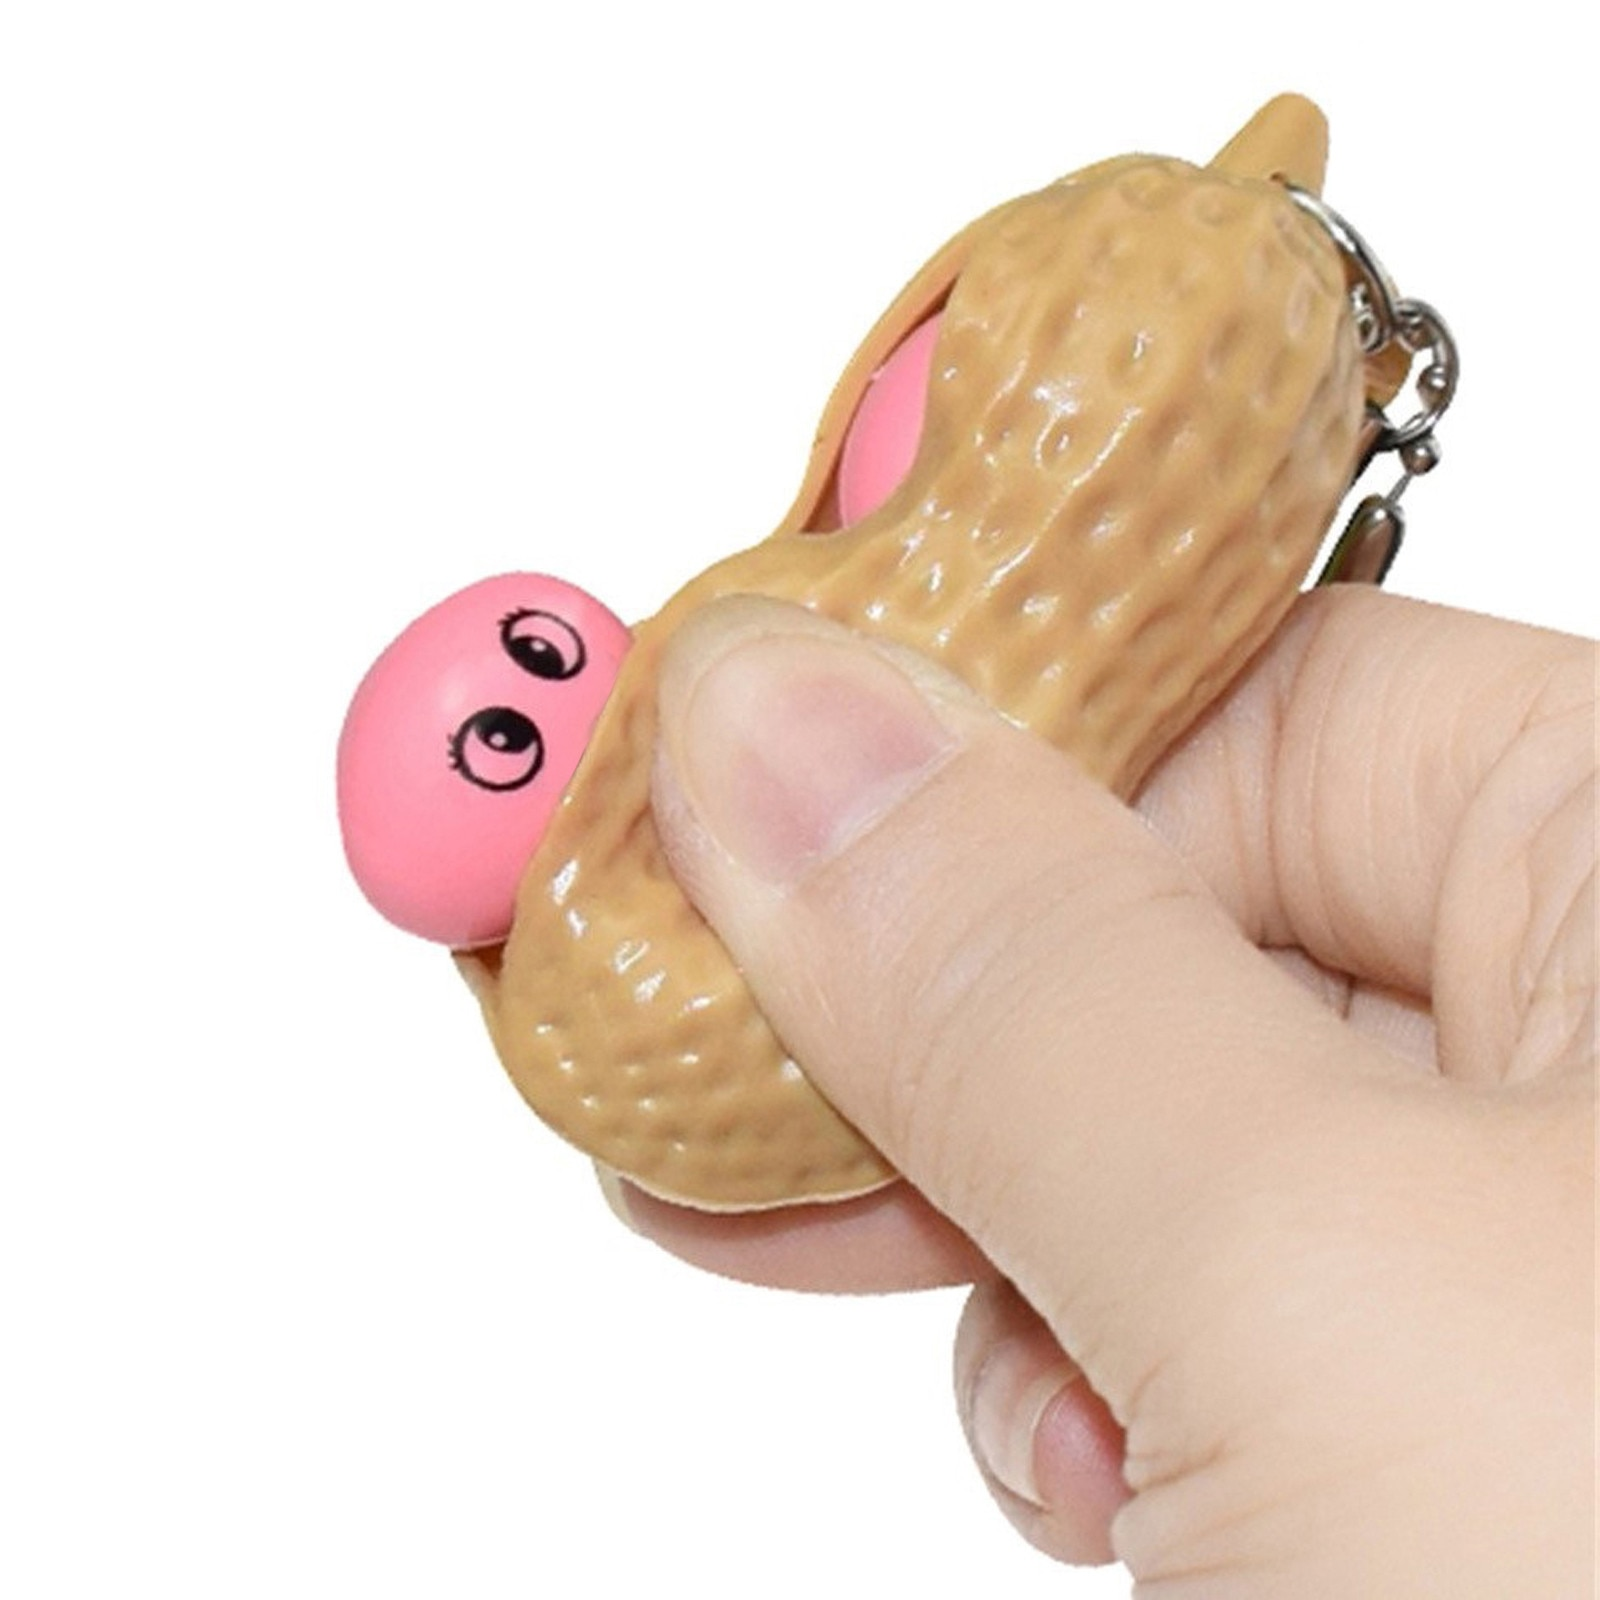 3PCS Creativity Fidgets Toys Antistress Decompression Squishy Squeeze peanut Toys Keychain Toy for Adult children kids boy girl enlarge